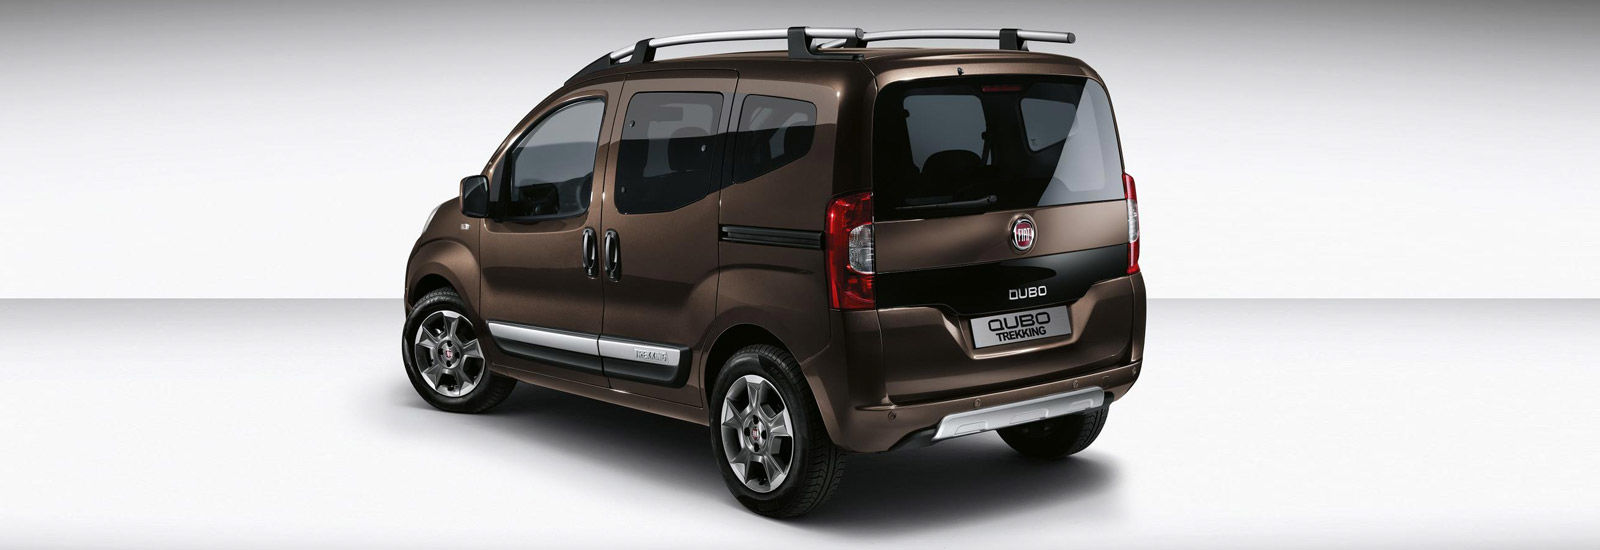 2016 fiat qubo facelift complete guide carwow. Black Bedroom Furniture Sets. Home Design Ideas